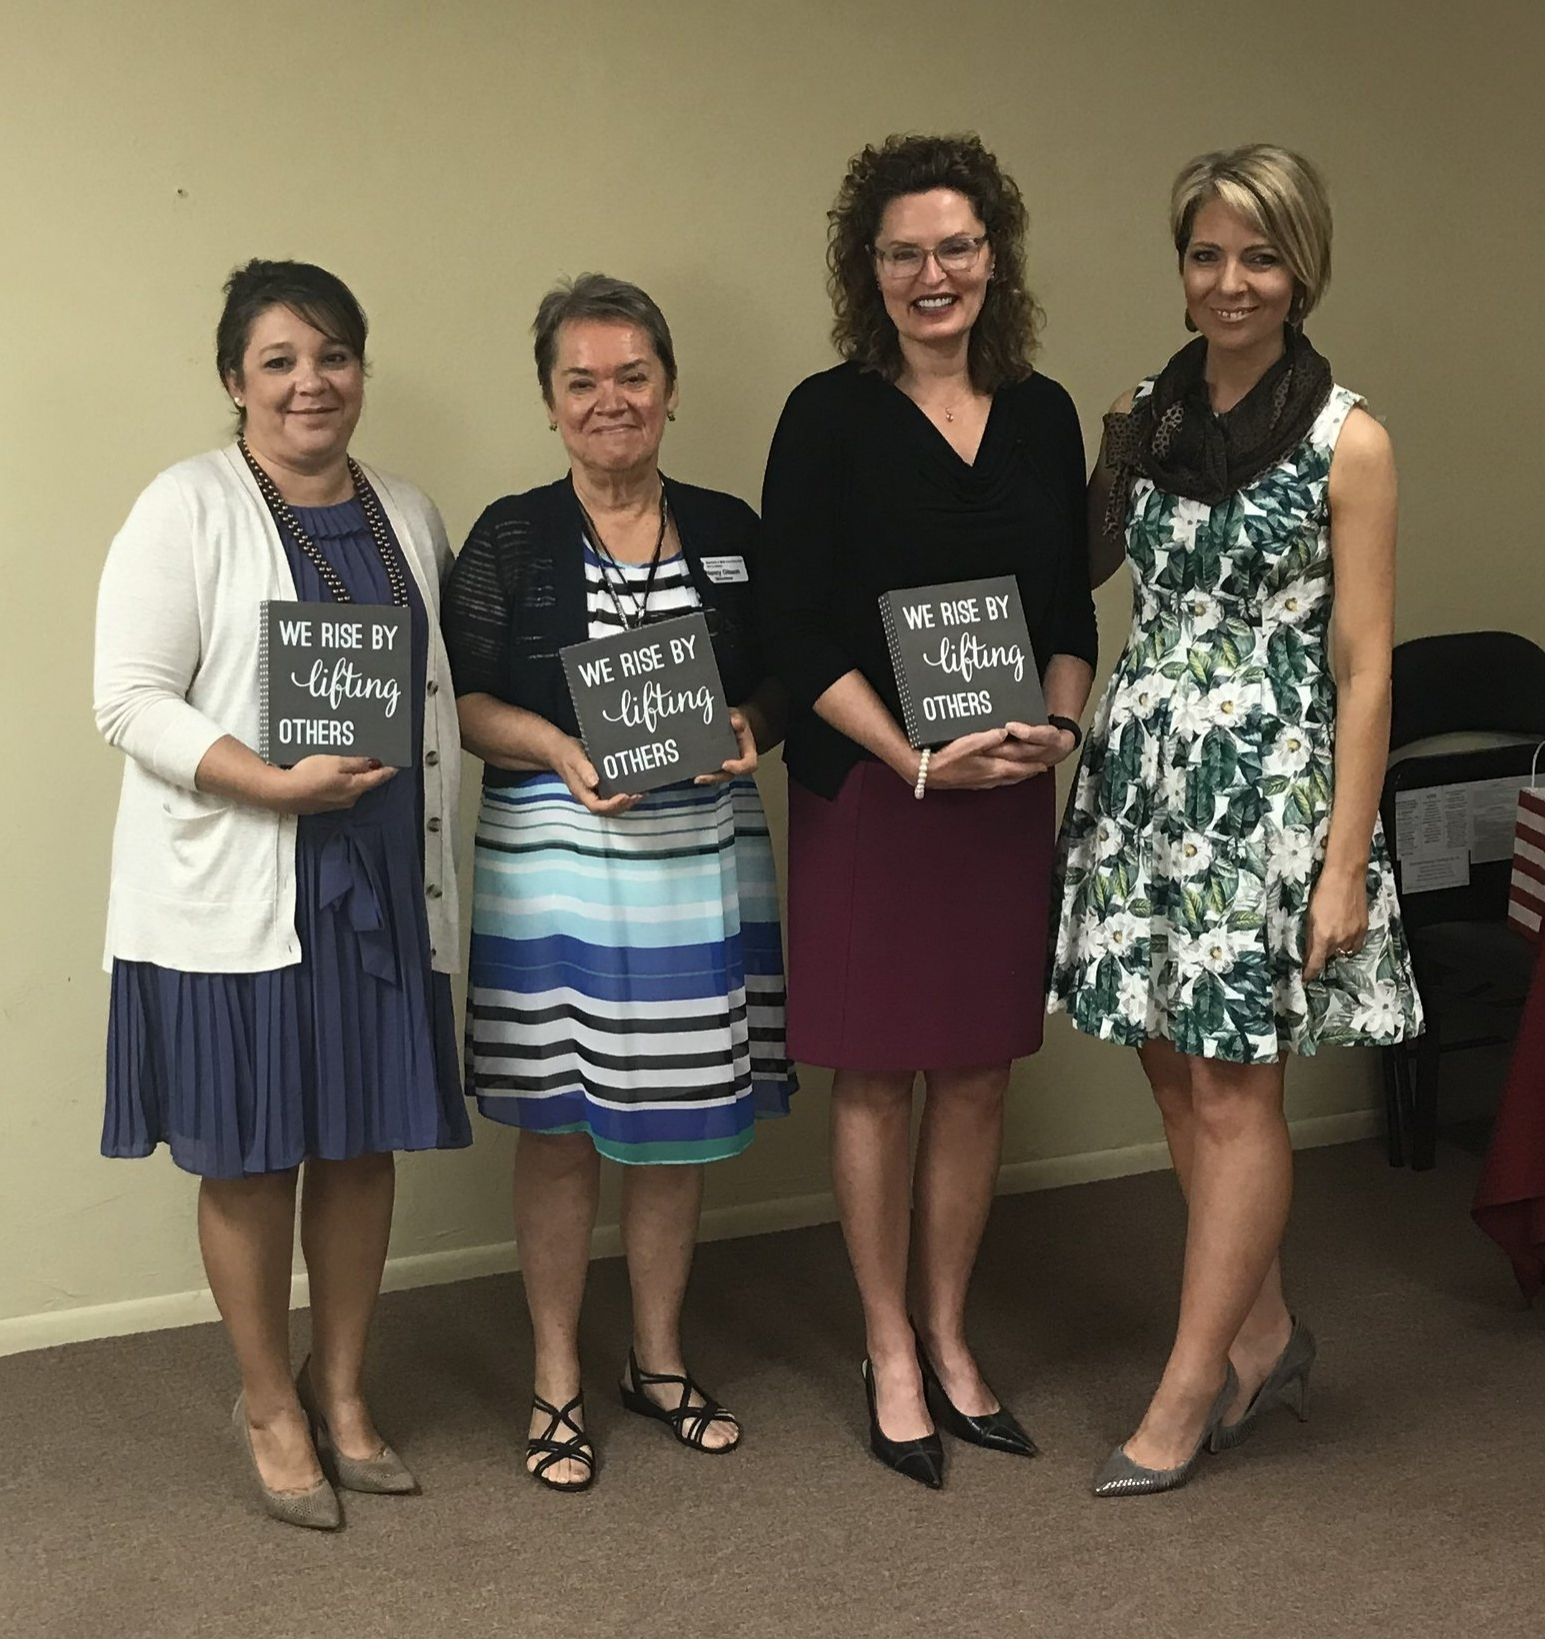 Colleen Jorgensen, Lisa Brown, Nancy Gibson and Erica Castner at the Dress for Success SW Florida WETES Graduation in Fort Myers - April 18, 2018.